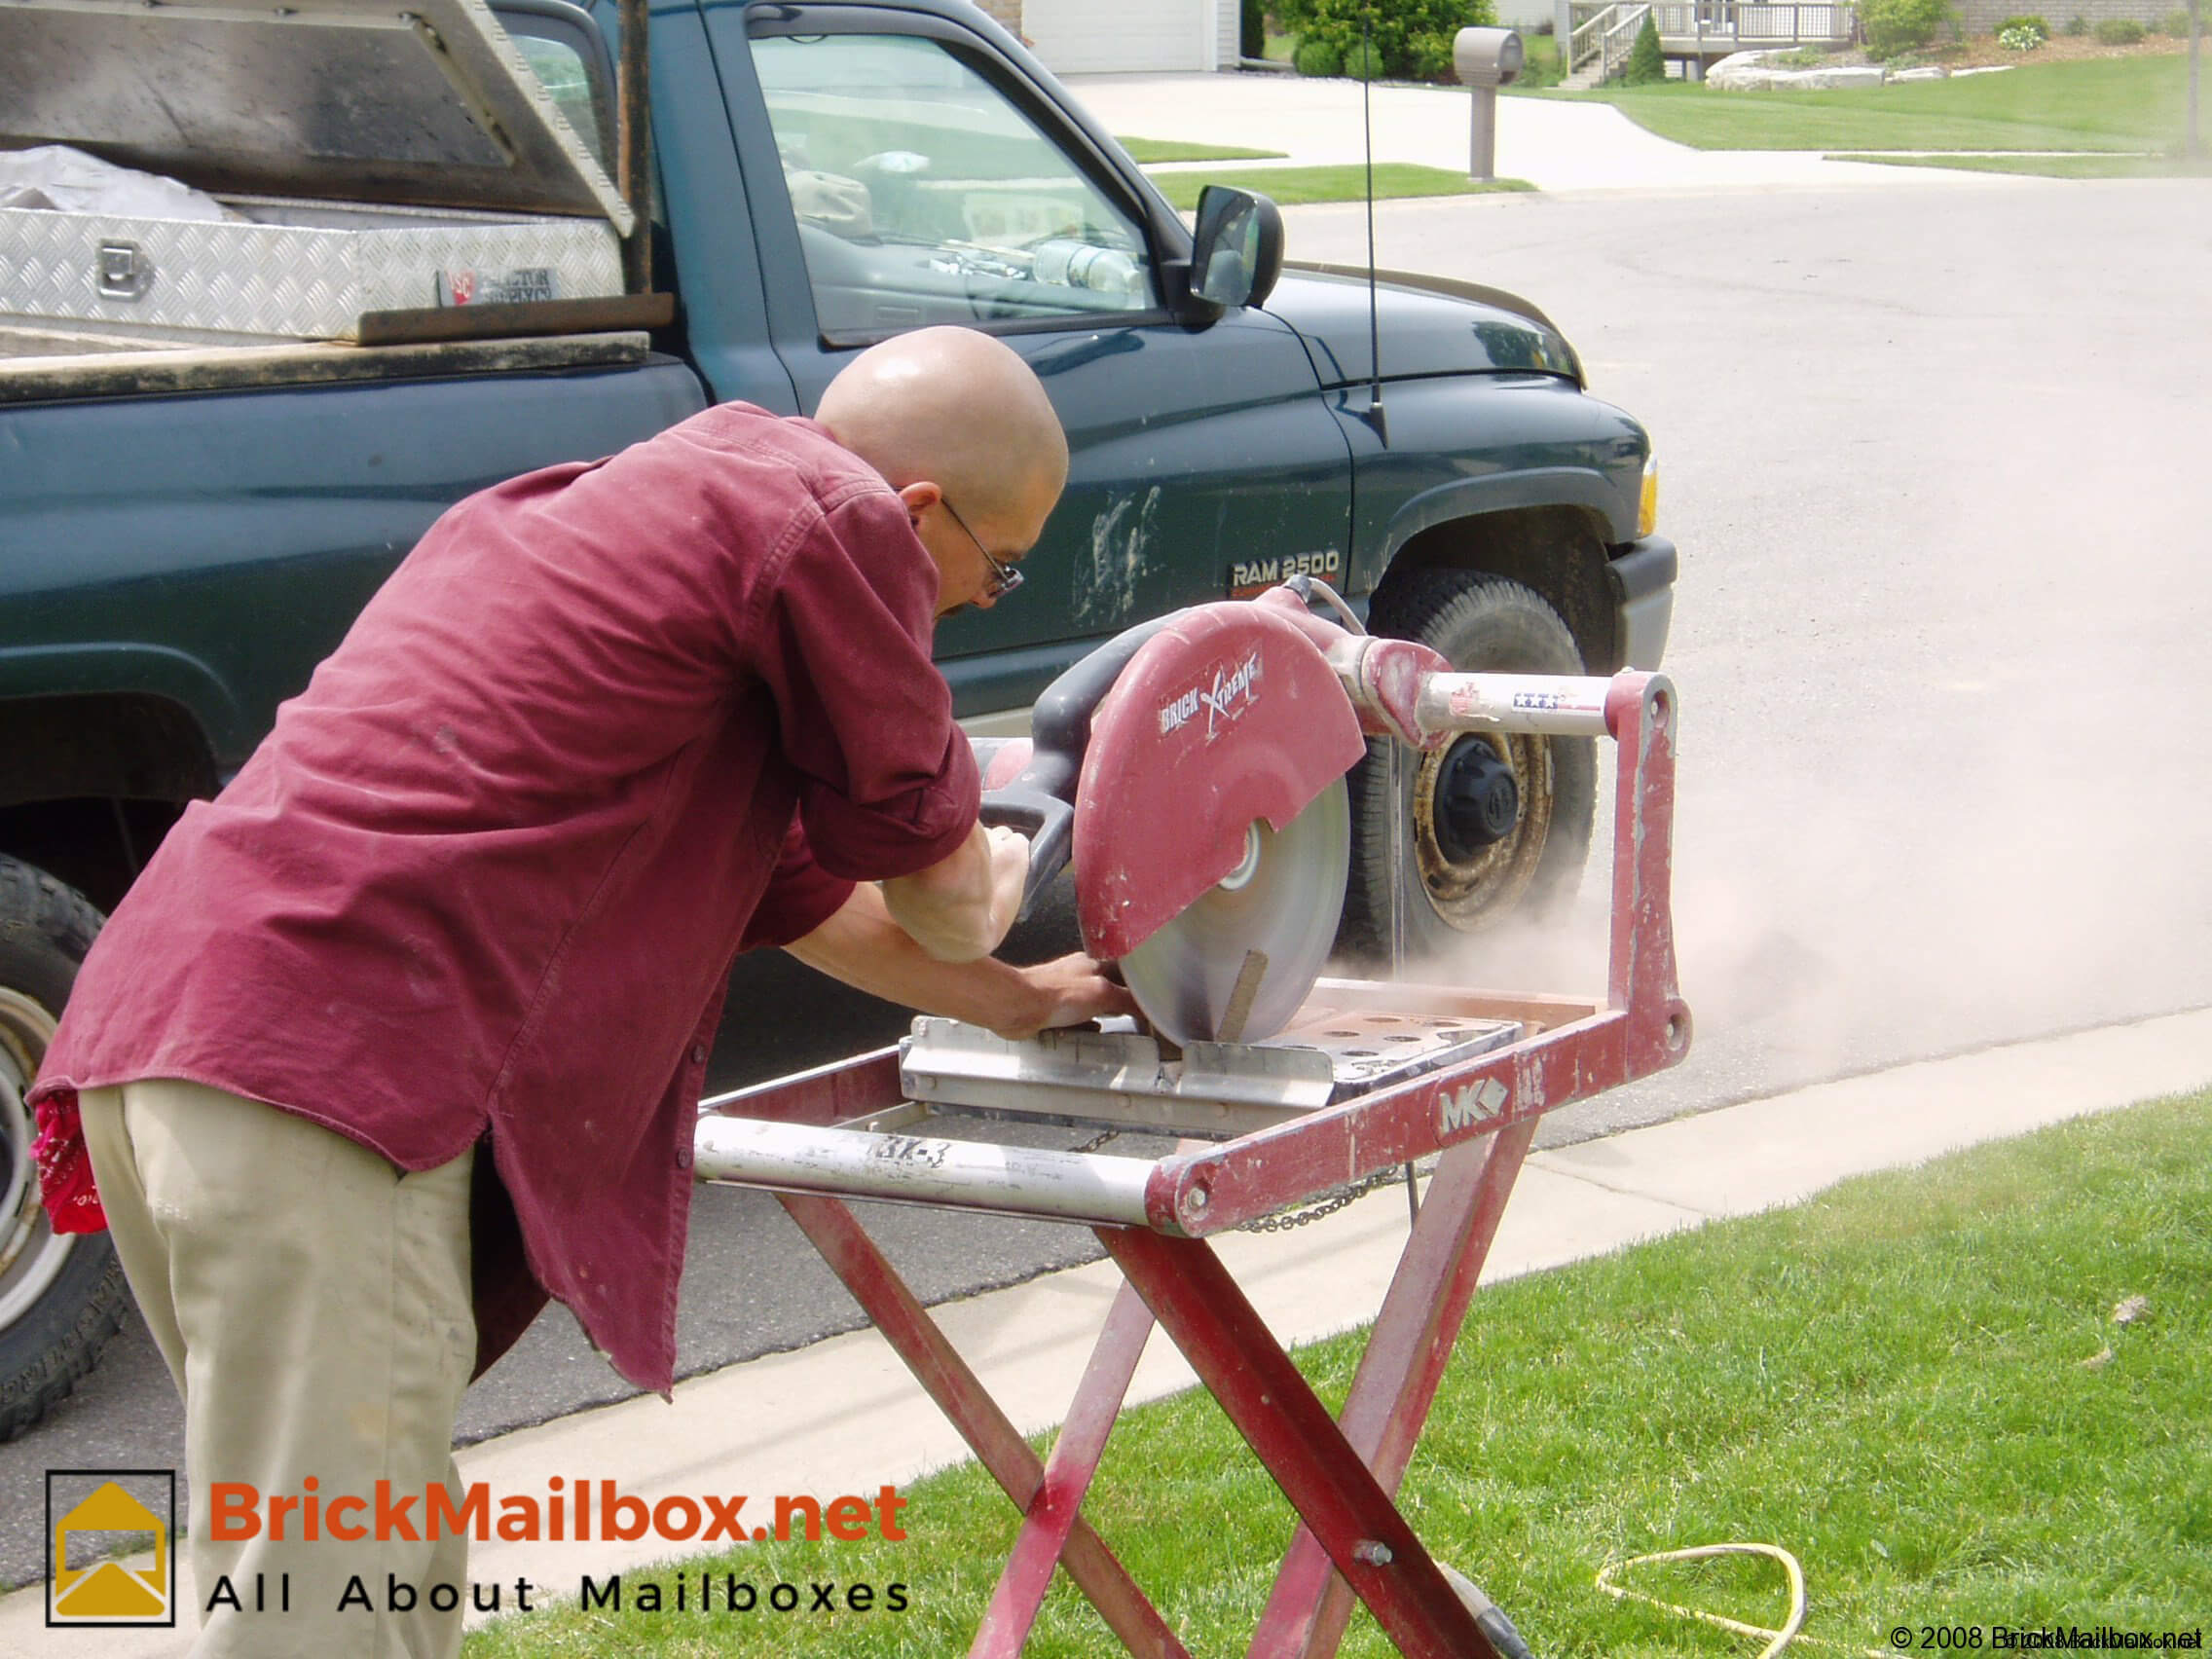 Here is where a rented masonry saw becomes really handy and effective.